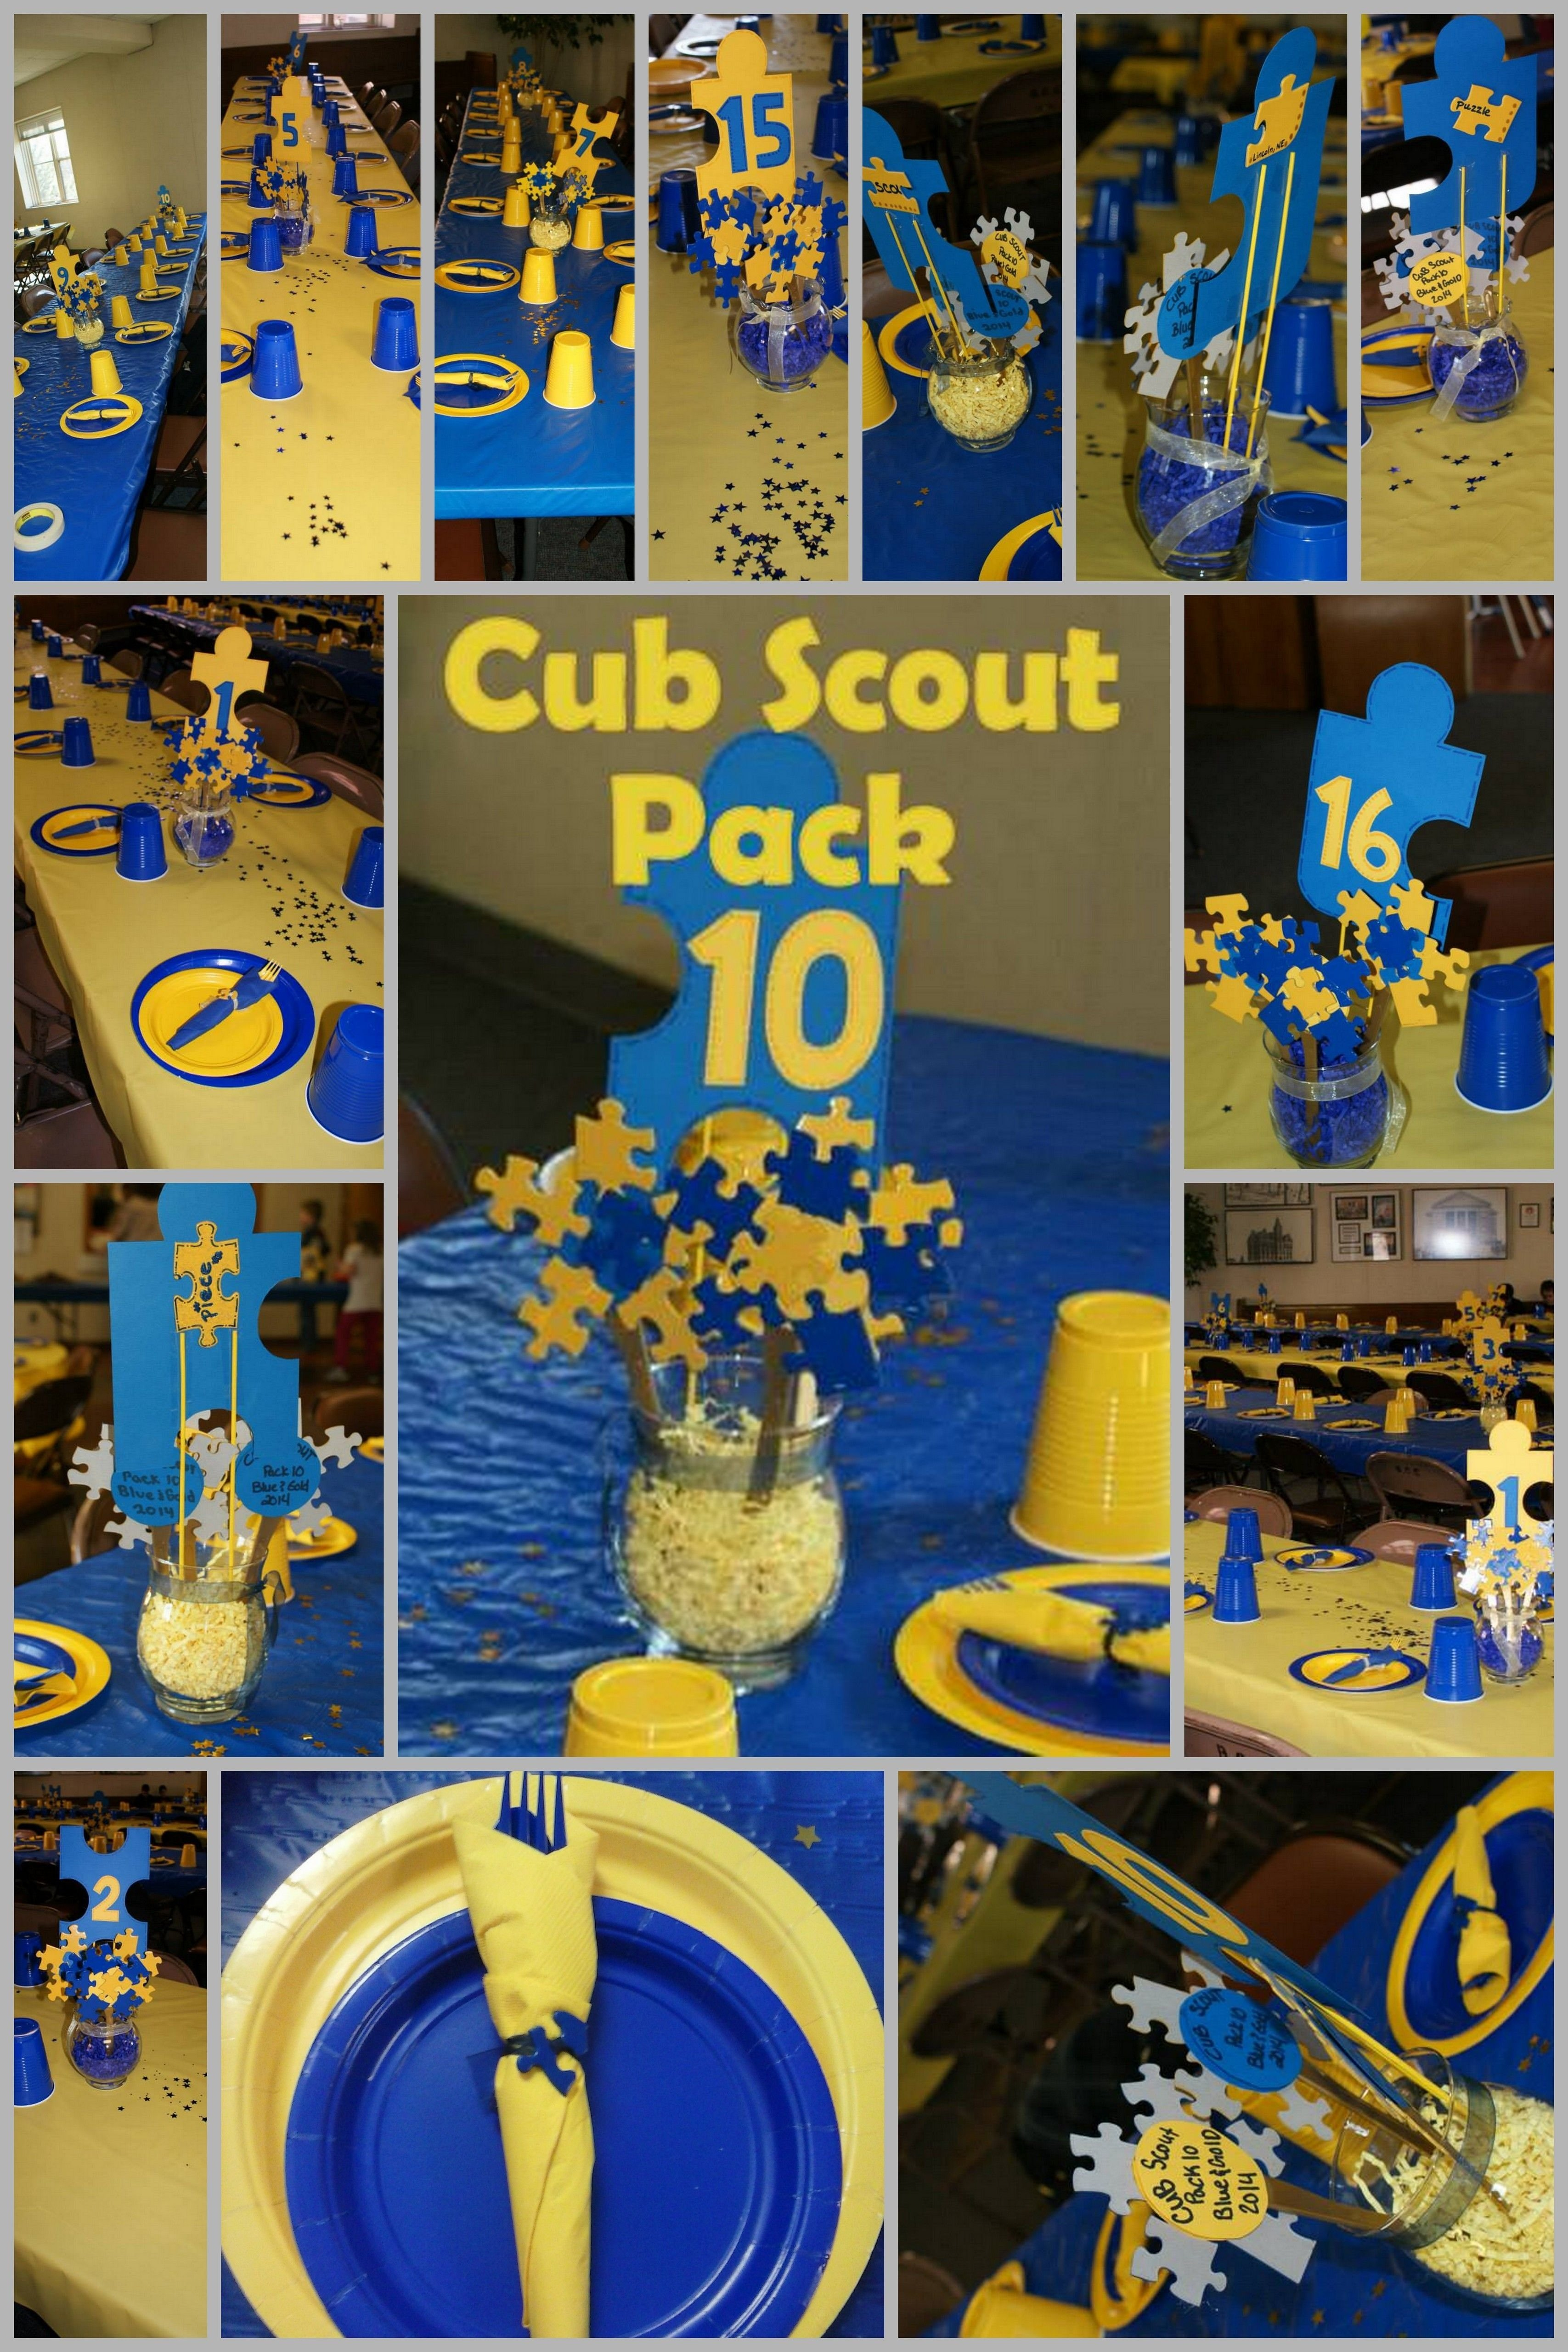 10 Fantastic Cub Scout Blue And Gold Ideas blue and gold puzzle piece themed party for cub scout pack 10 cub